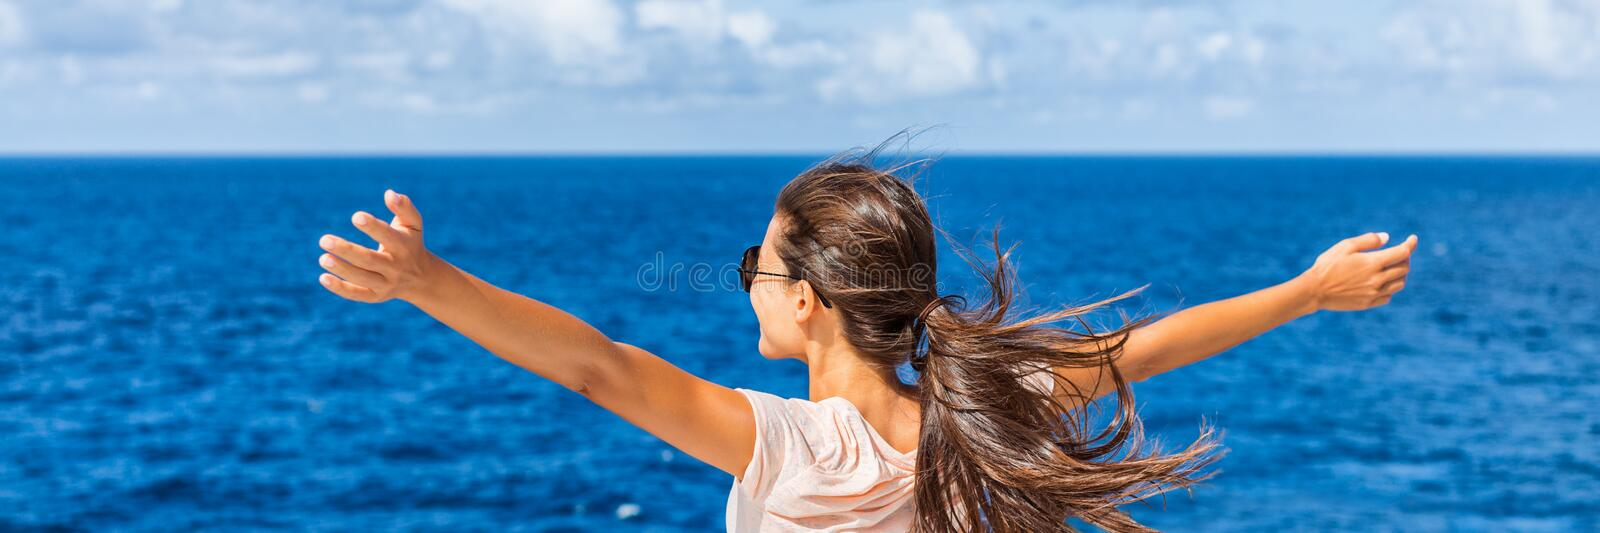 Happy freedom woman with open arms looking at sea stock images